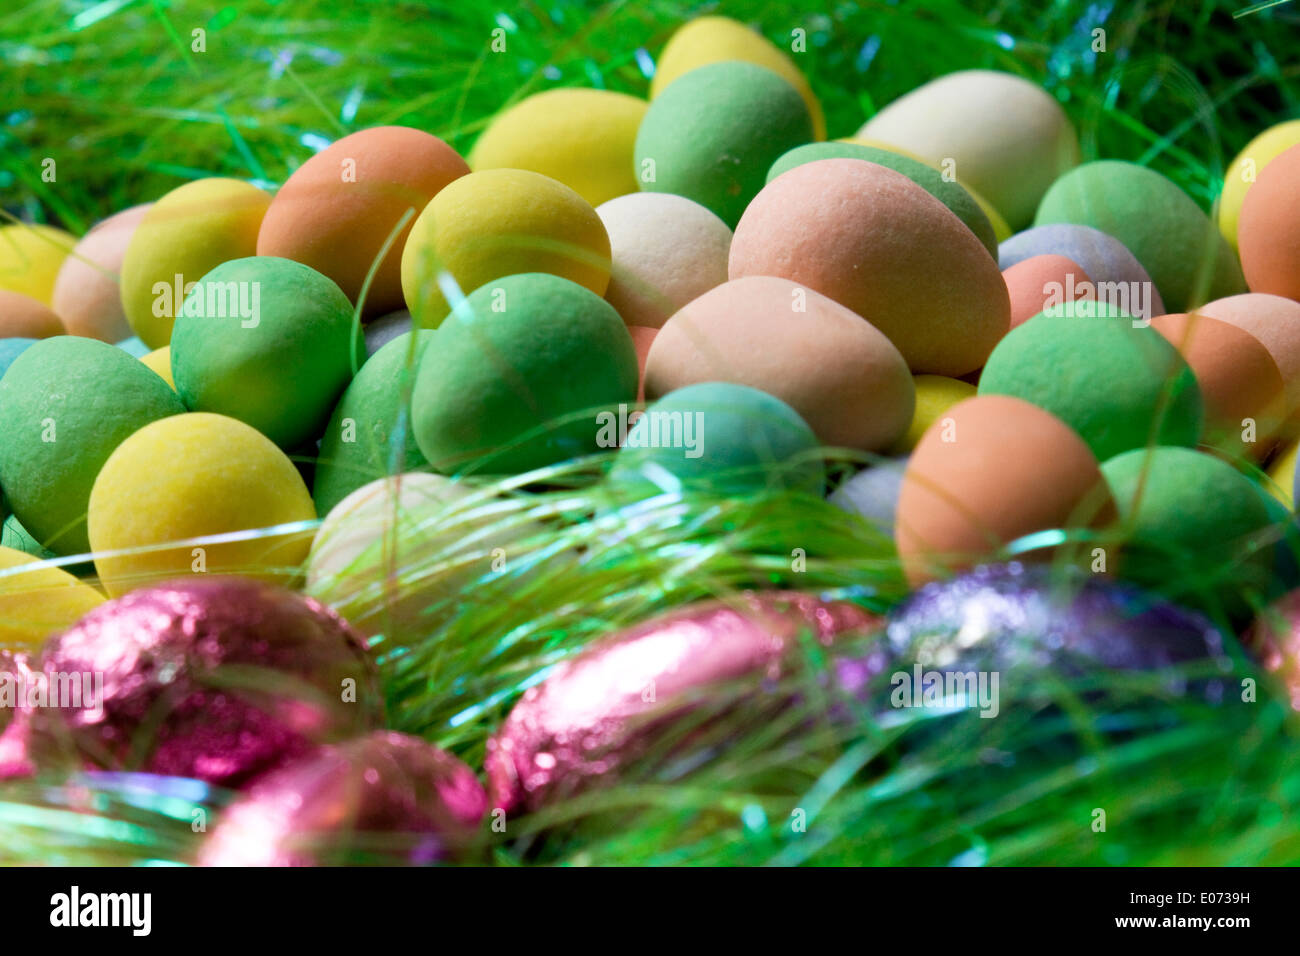 Multi-Colored Candy Eggs - Stock Image